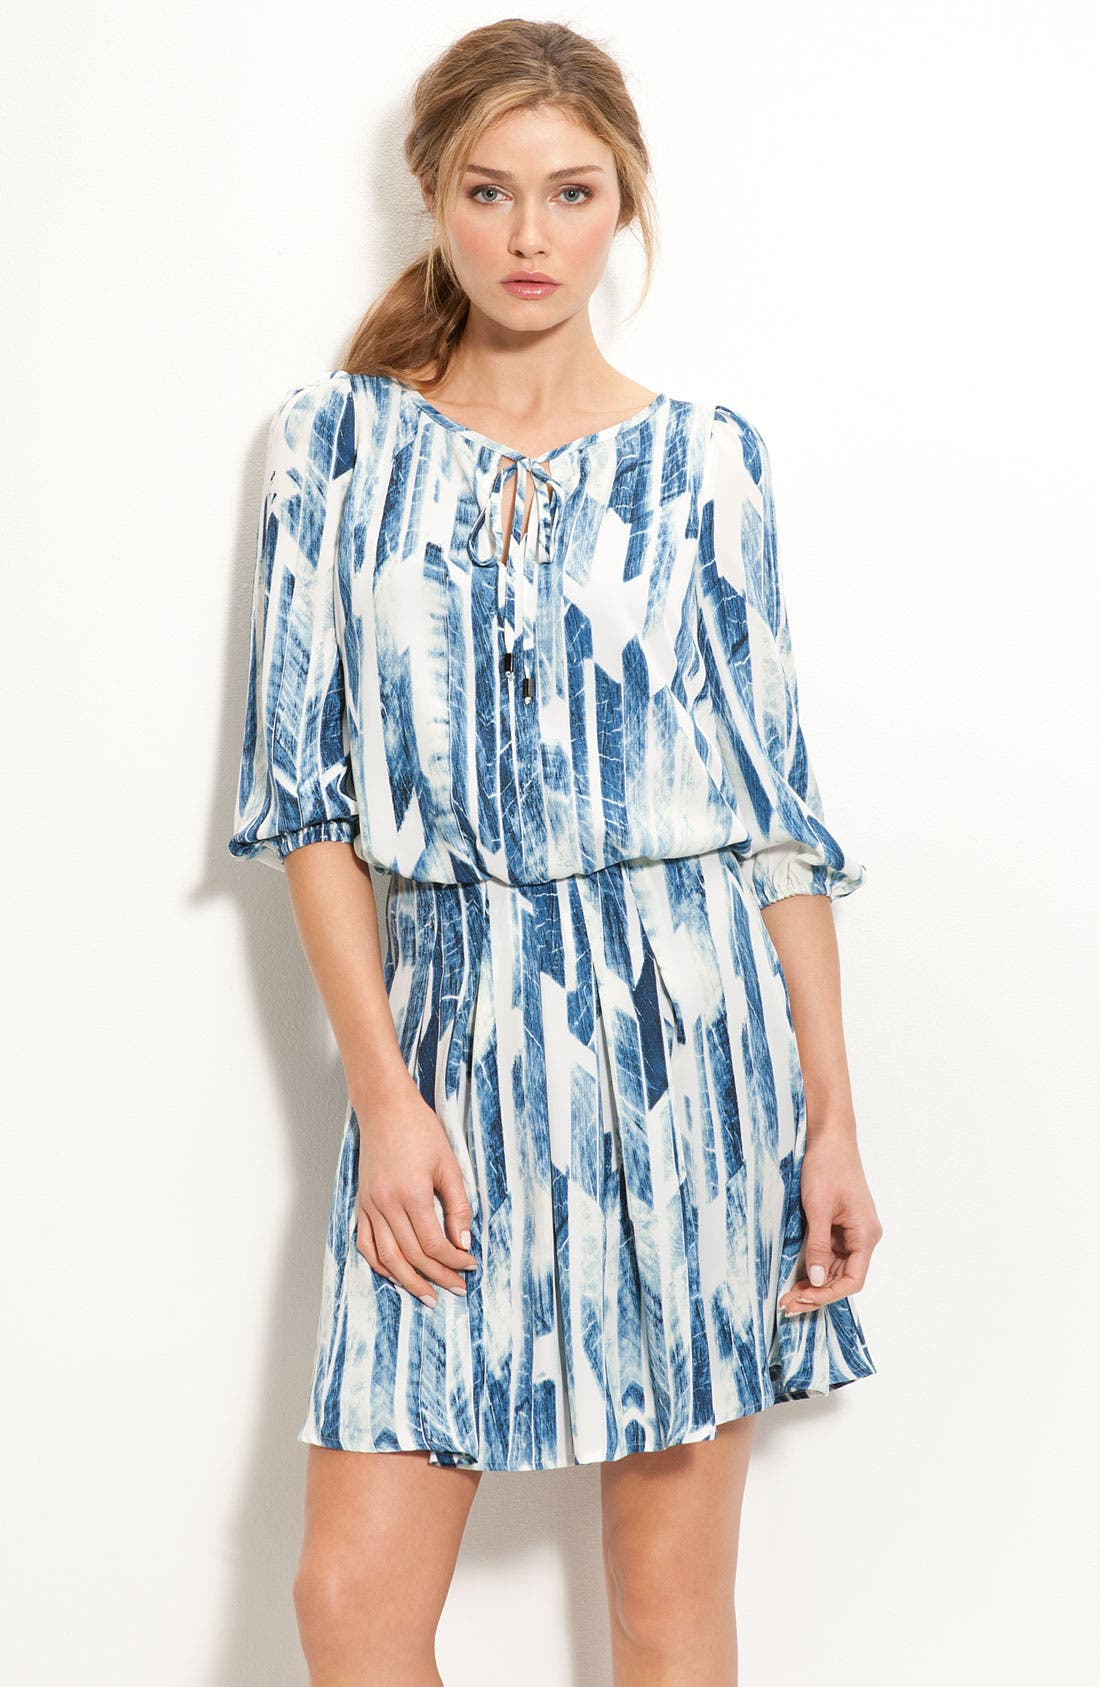 Main Image - Vince Camuto Crêpe de Chine Keyhole Dress